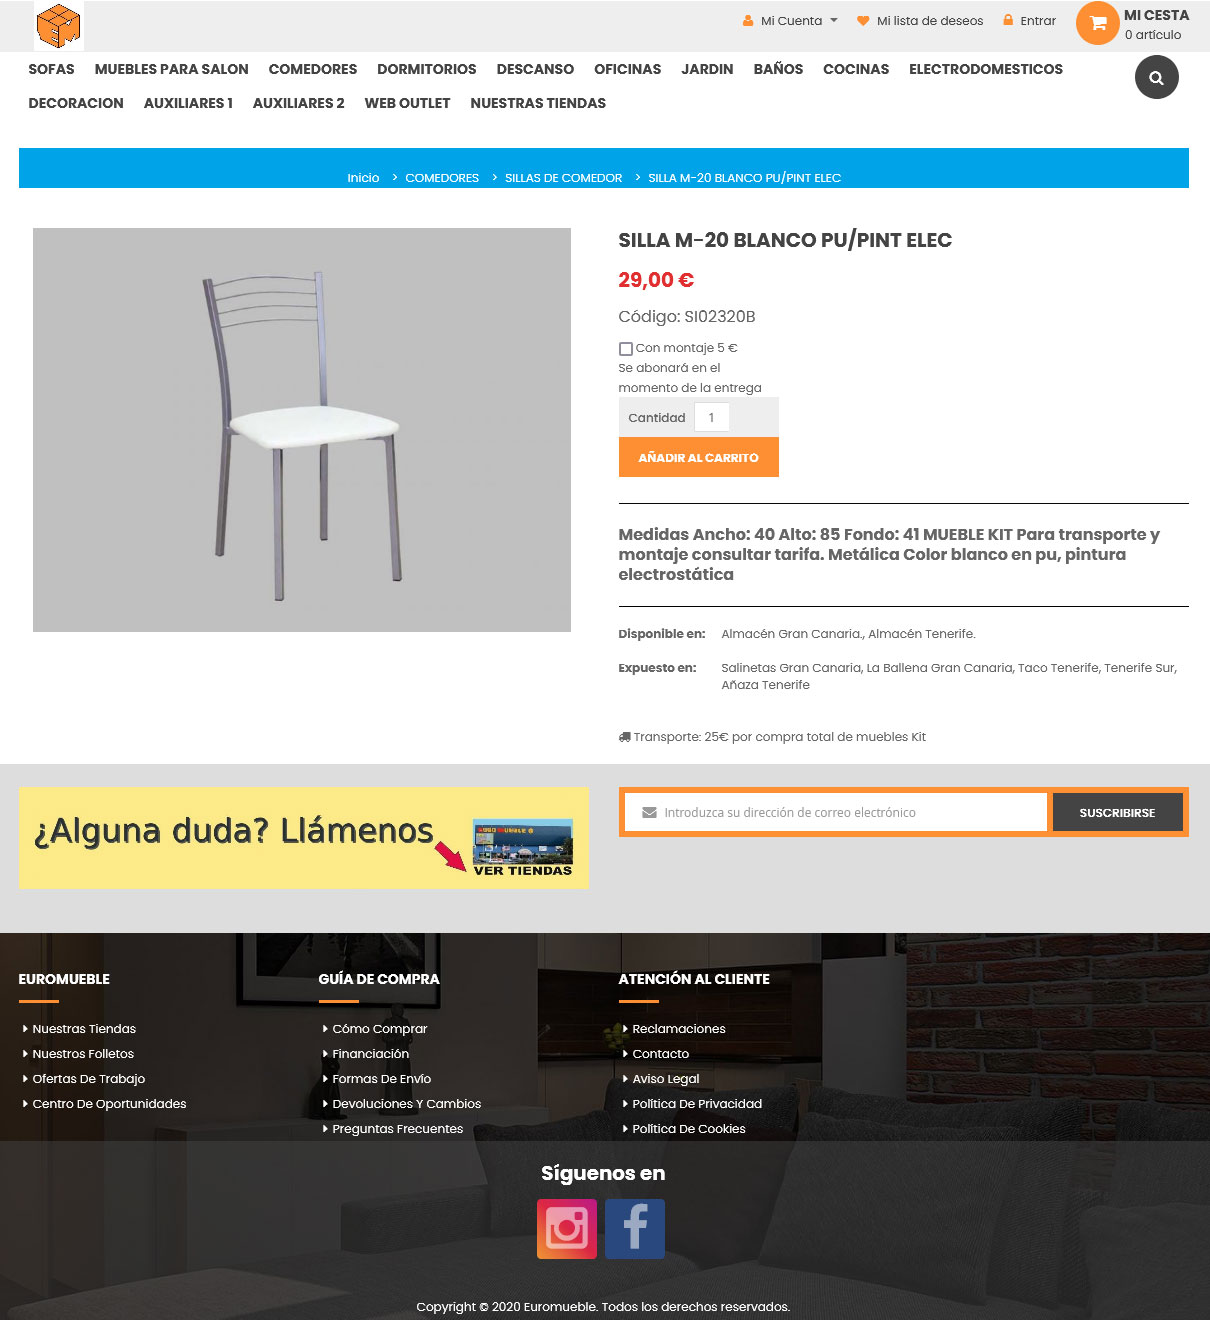 assemble cost option on magento  product details page